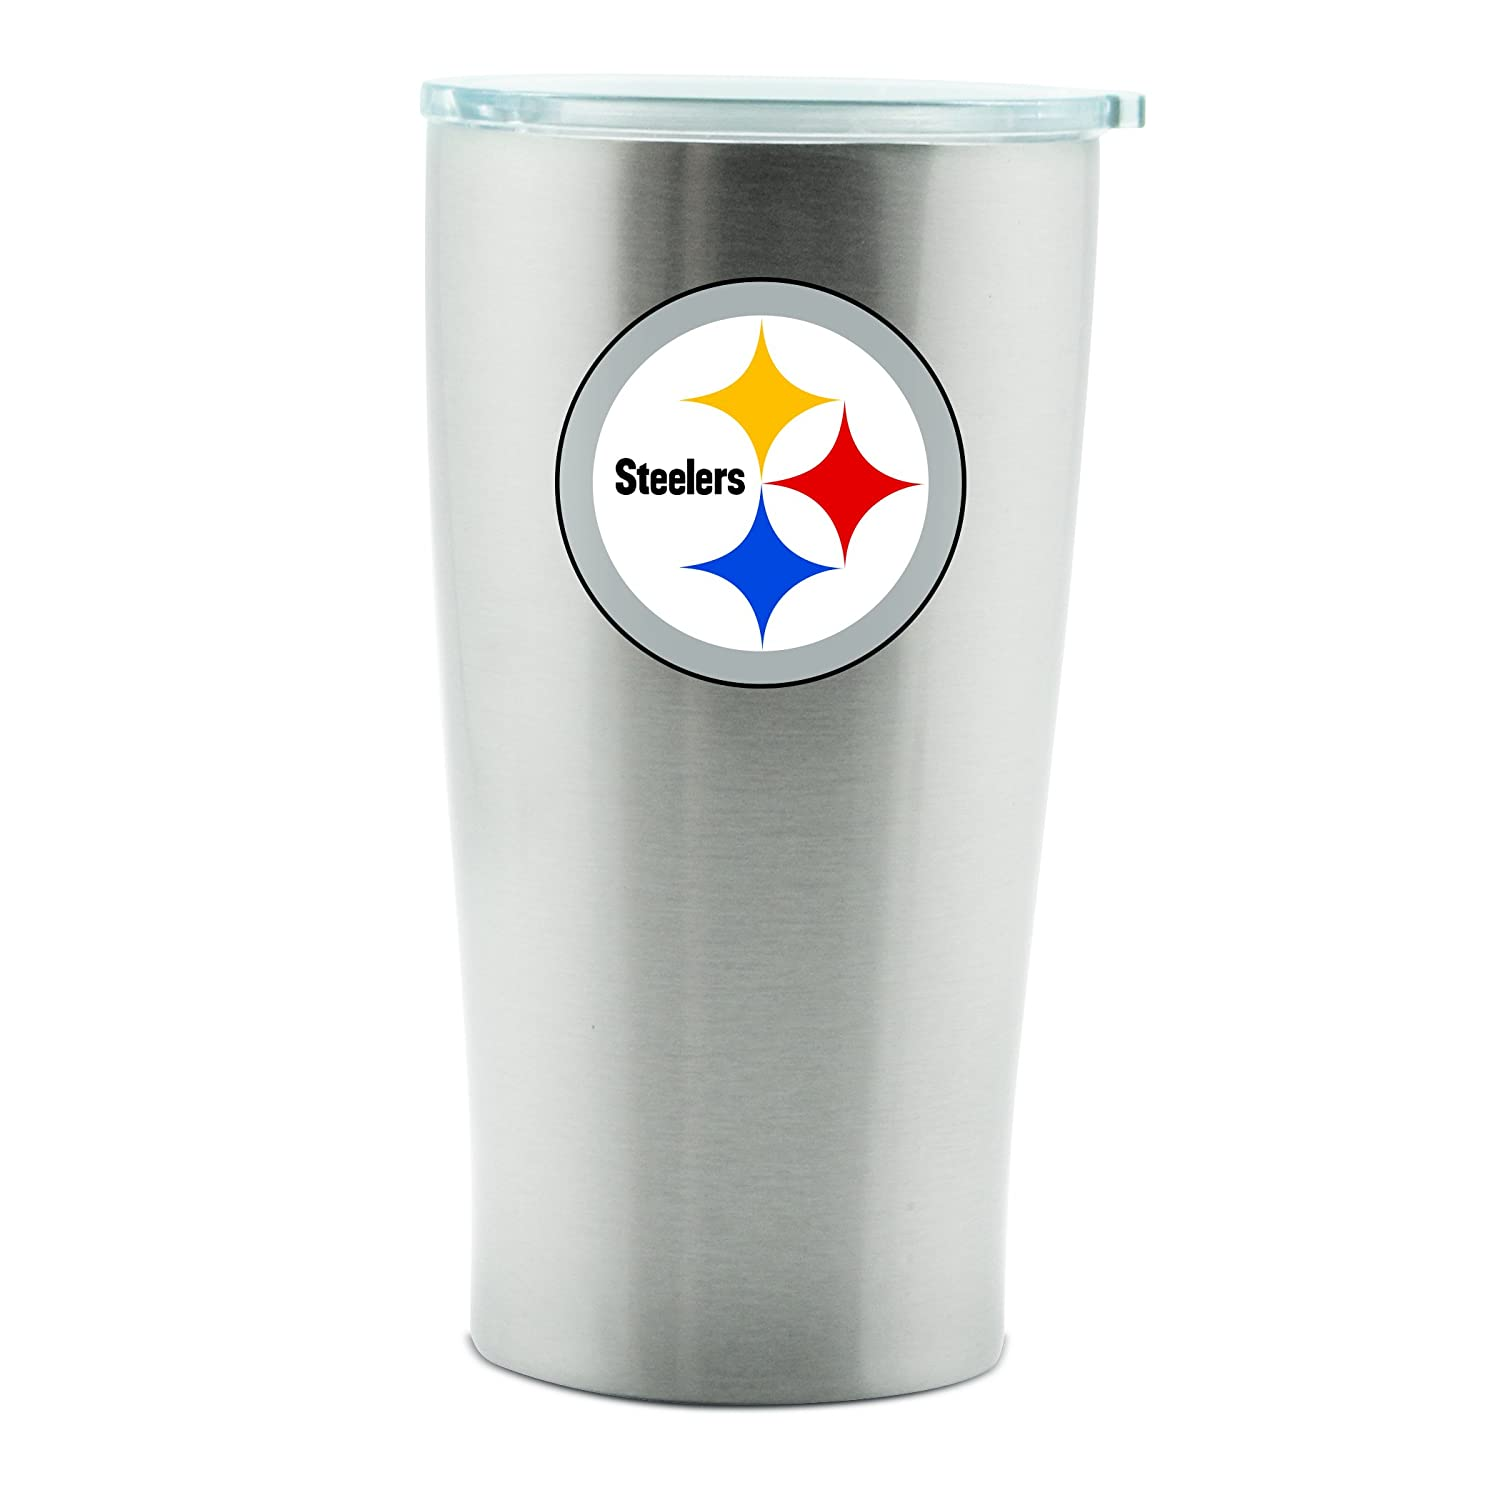 Amazon.com: Pittsburgh Steelers Thermo Copa 14oz Acero ...